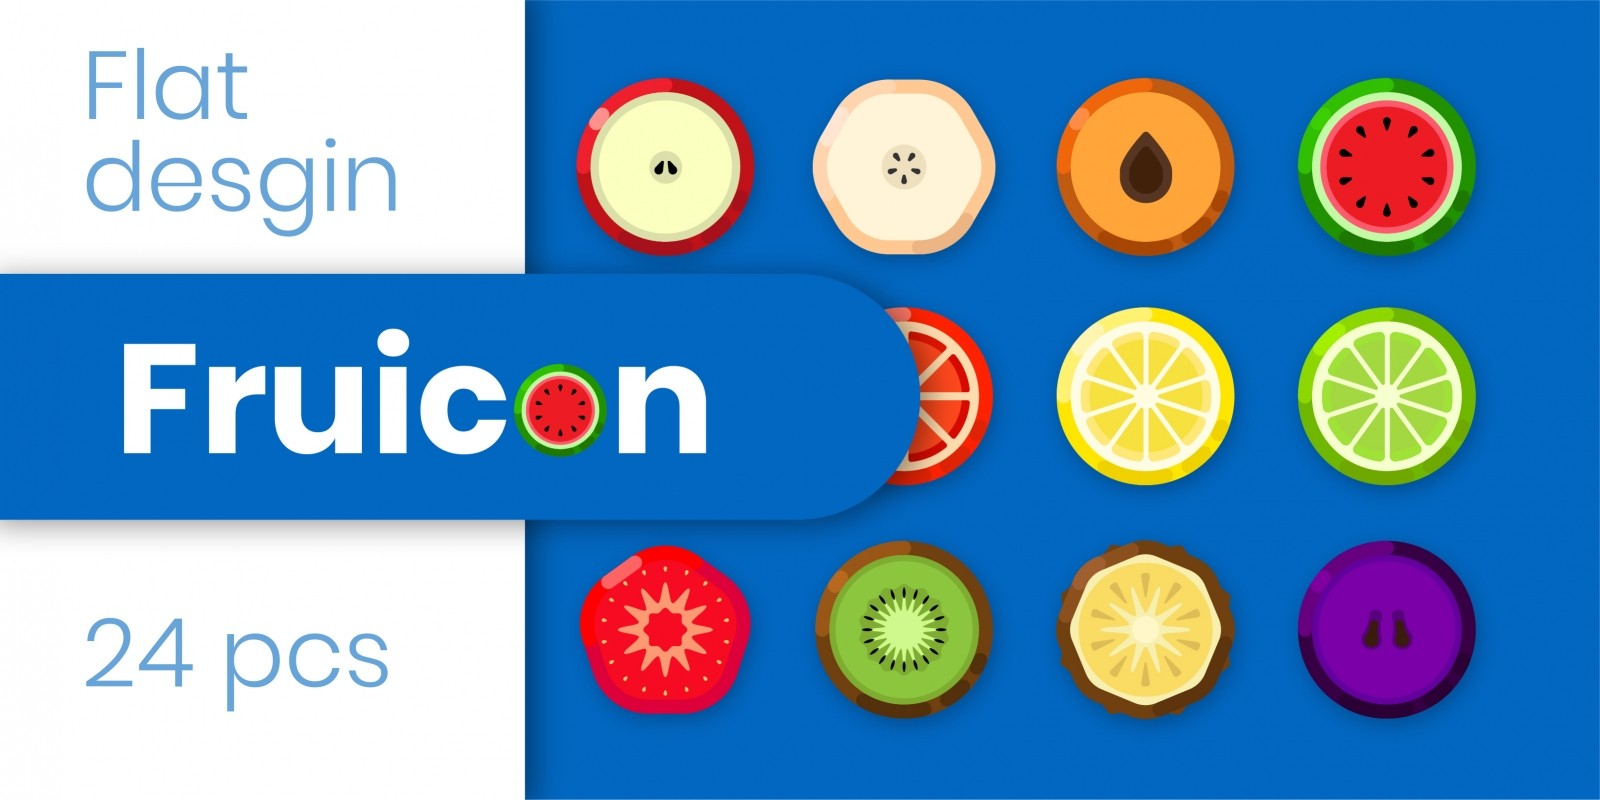 Fruicon - Flat Design Fruit Icons